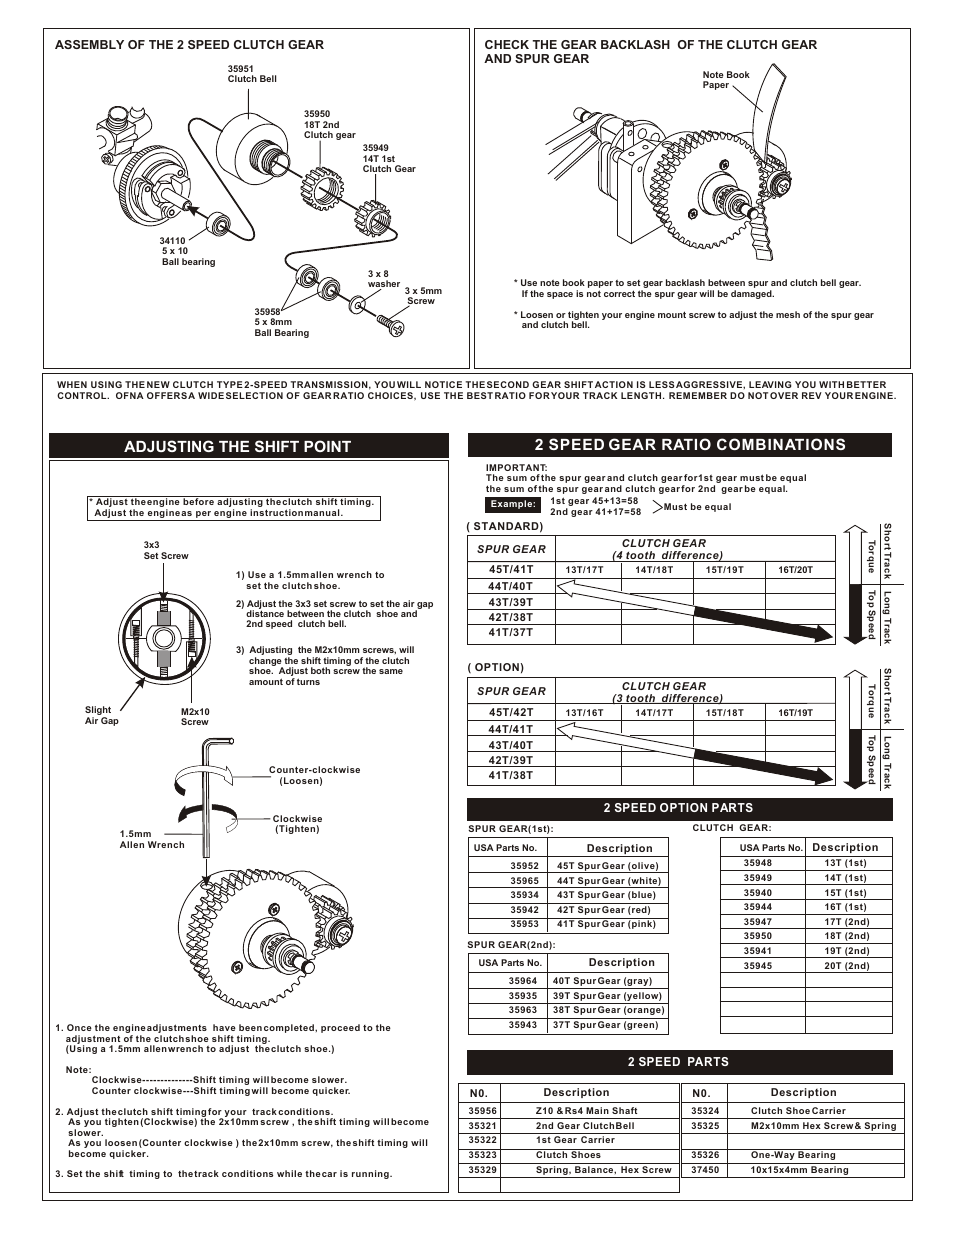 Adjusting The Shift Point 2 Speed Gear Ratio Combinations